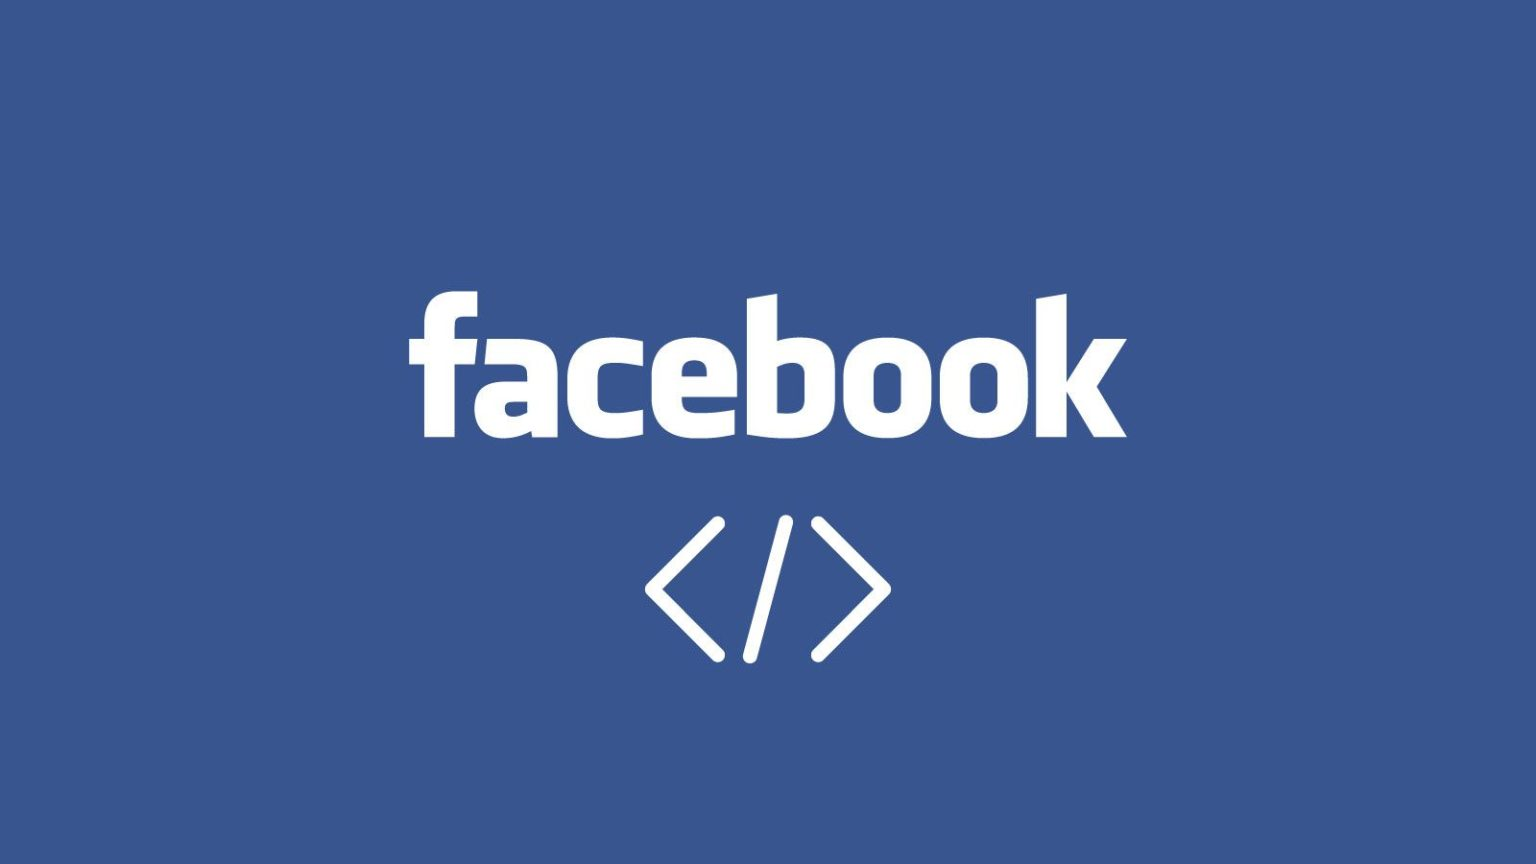 Facebook Marketing Strategies for eCommerce Business